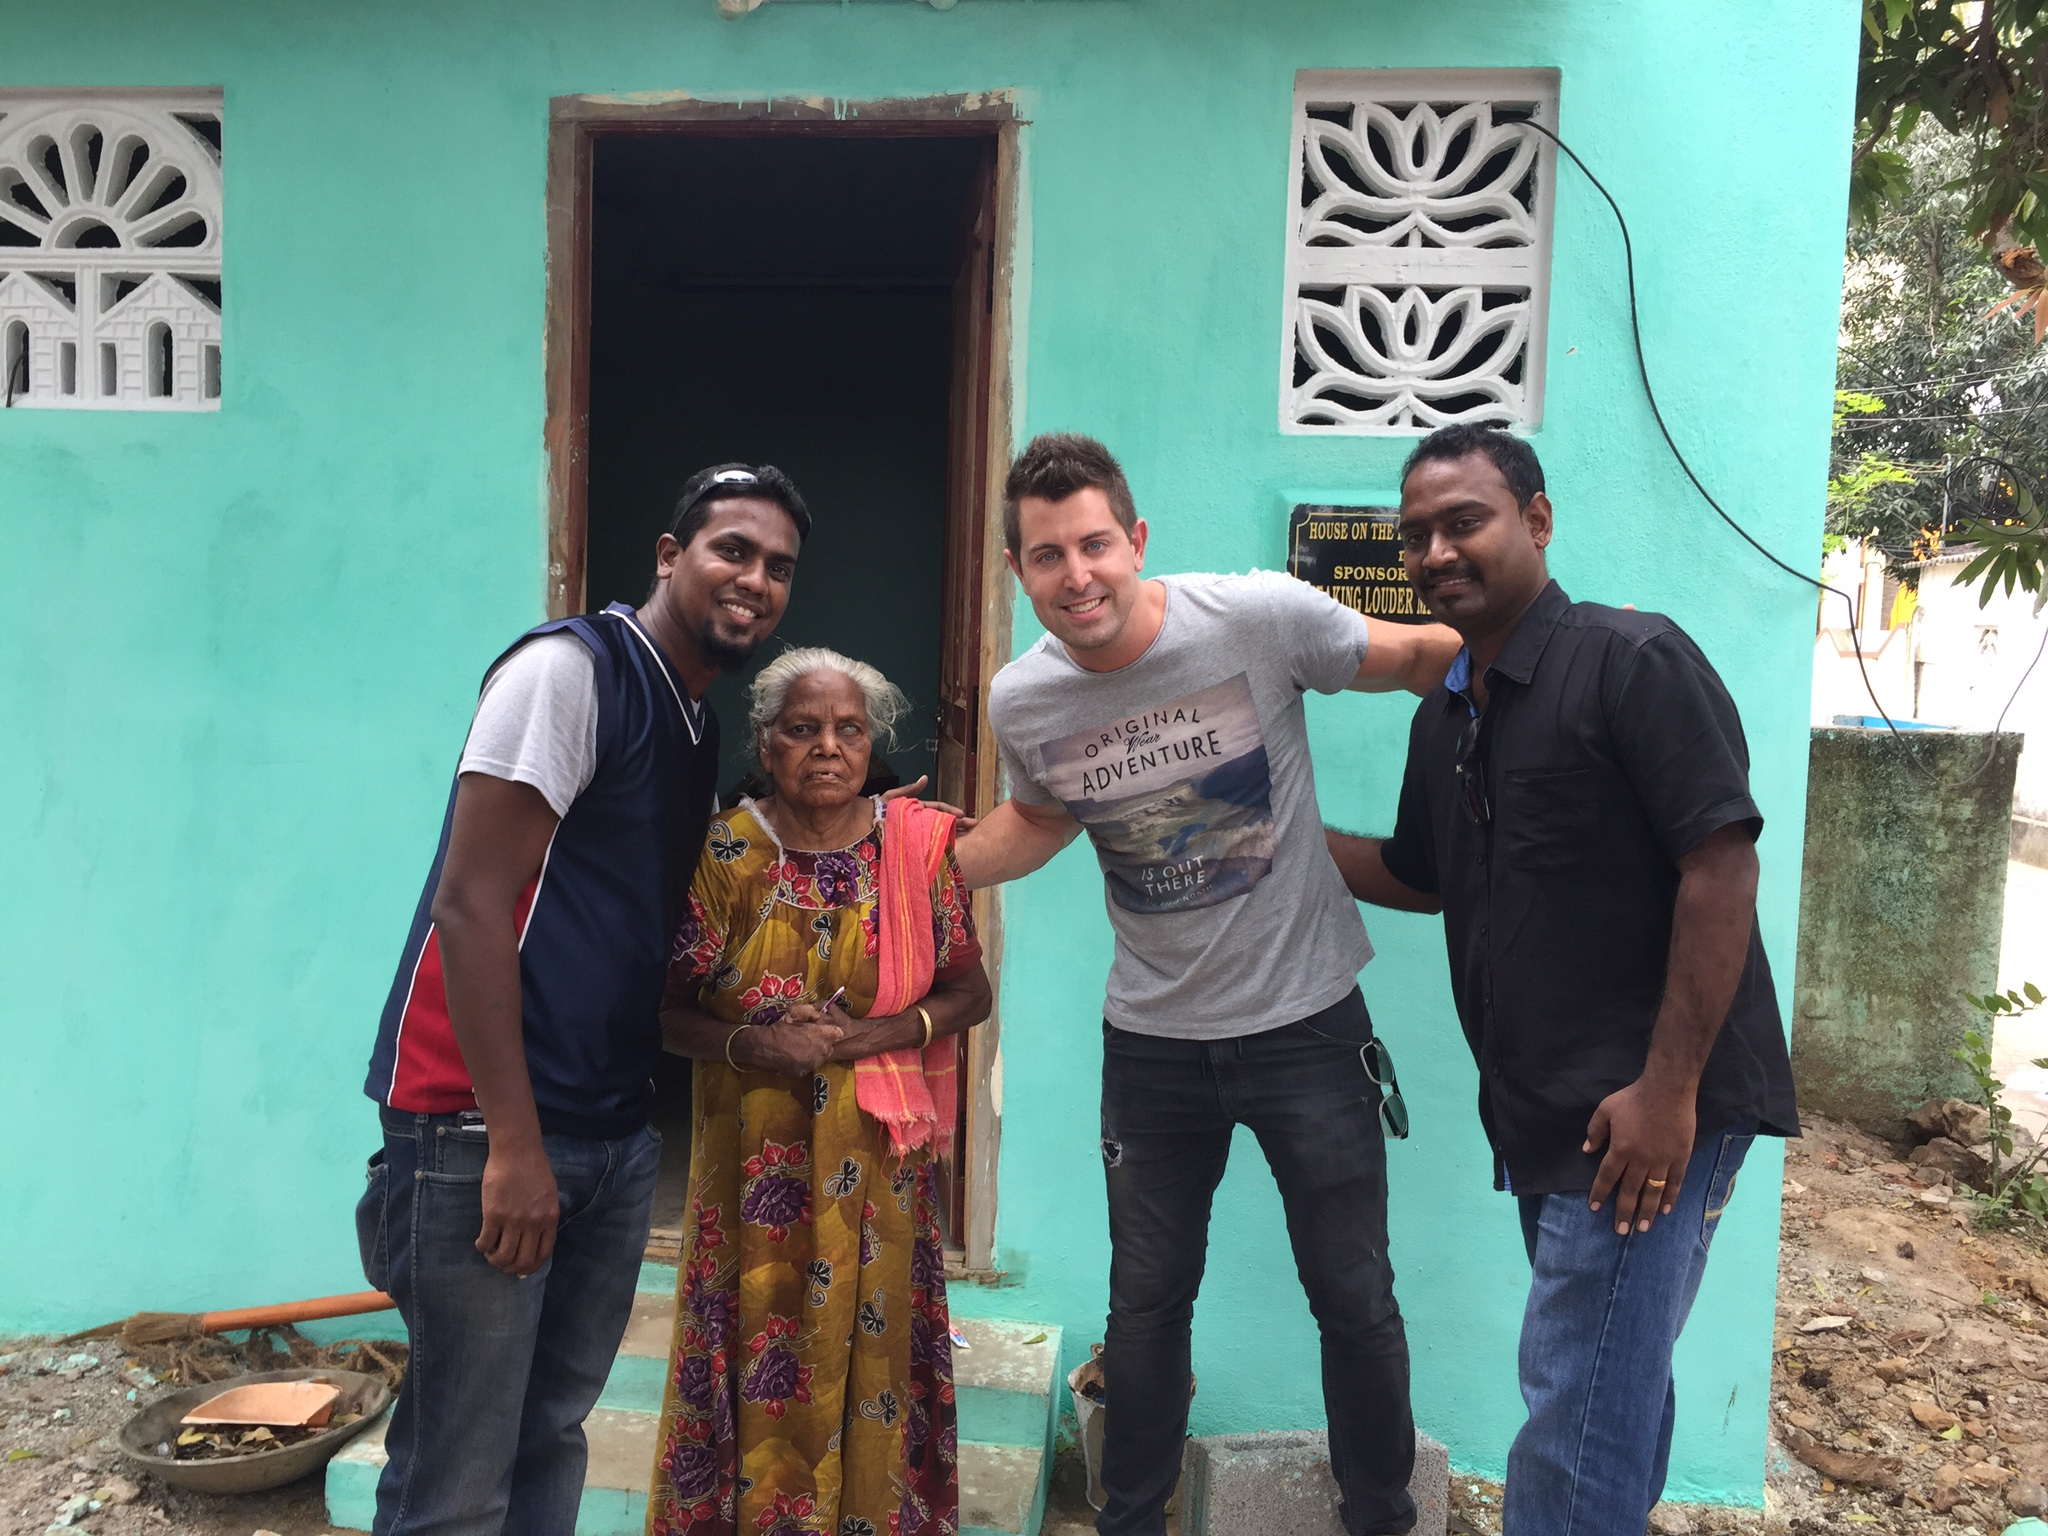 sound of HELP - Each year we aim to rebuild 4 homes in the region of Chennai with House on the Rock to provide a clean, sustainable living environment for families in need.Partnering with SEND Hope HIV+ Orphan Care to help meet the needs of children throughout India.